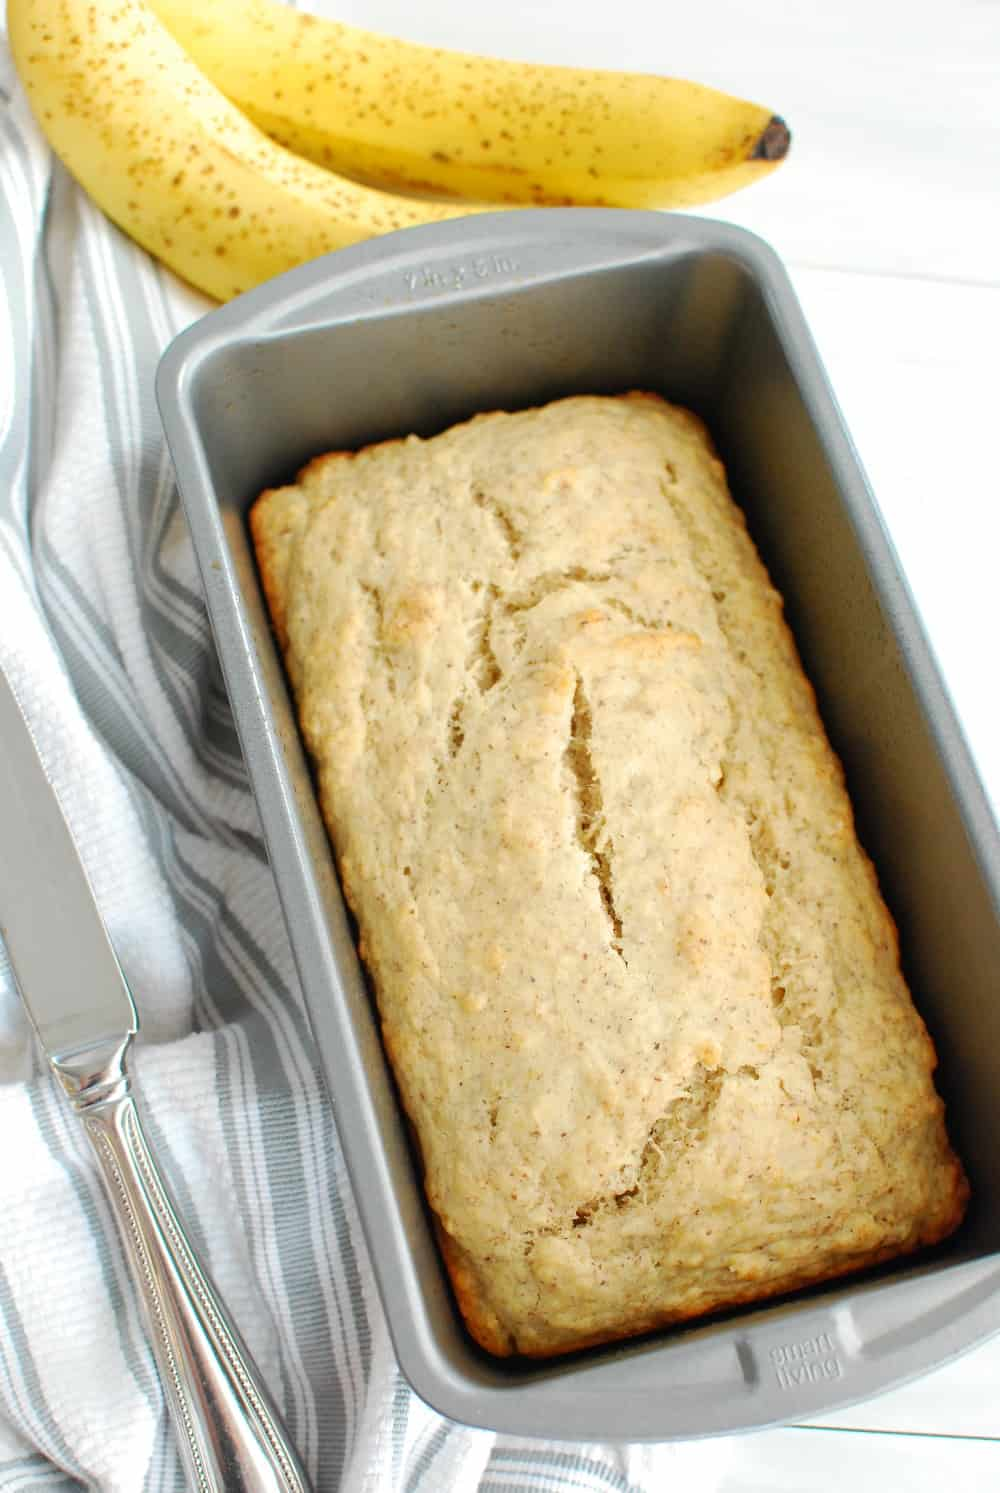 5 ingredient vegan banana bread cooked in a loaf pan, next to a knife and two bananas